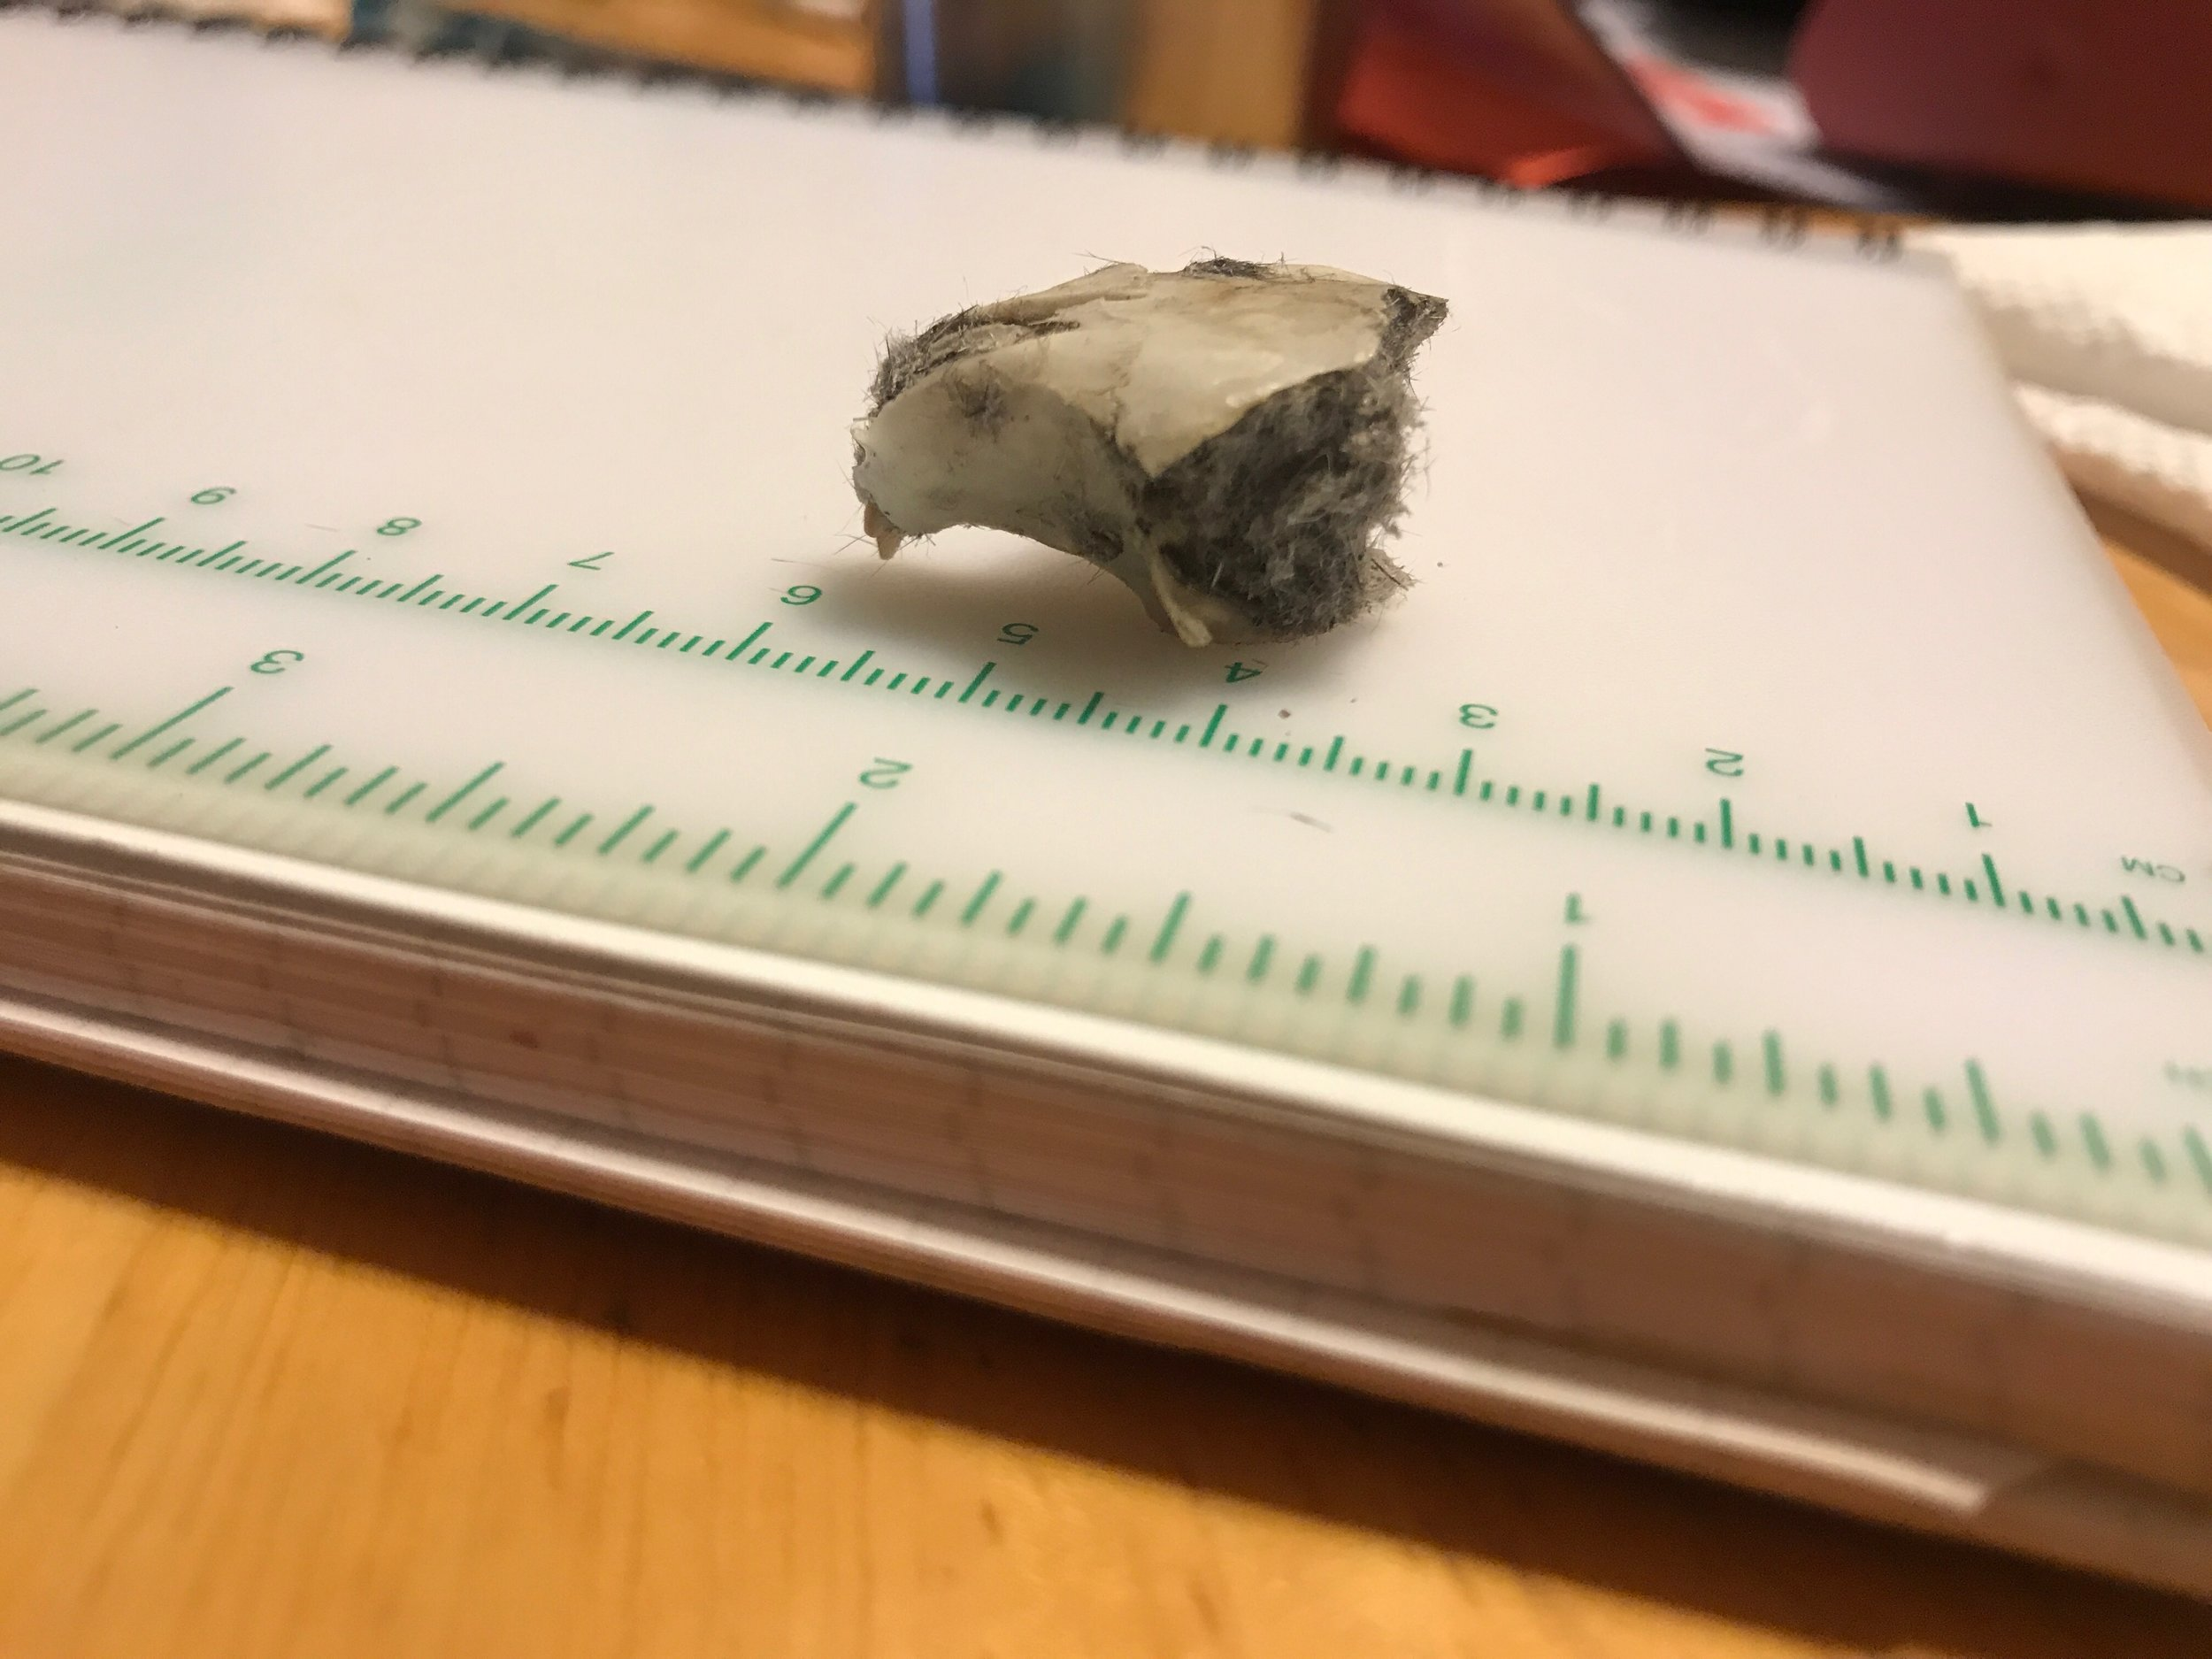 Part of a gray squirrel skull found in a barred owl pellet.